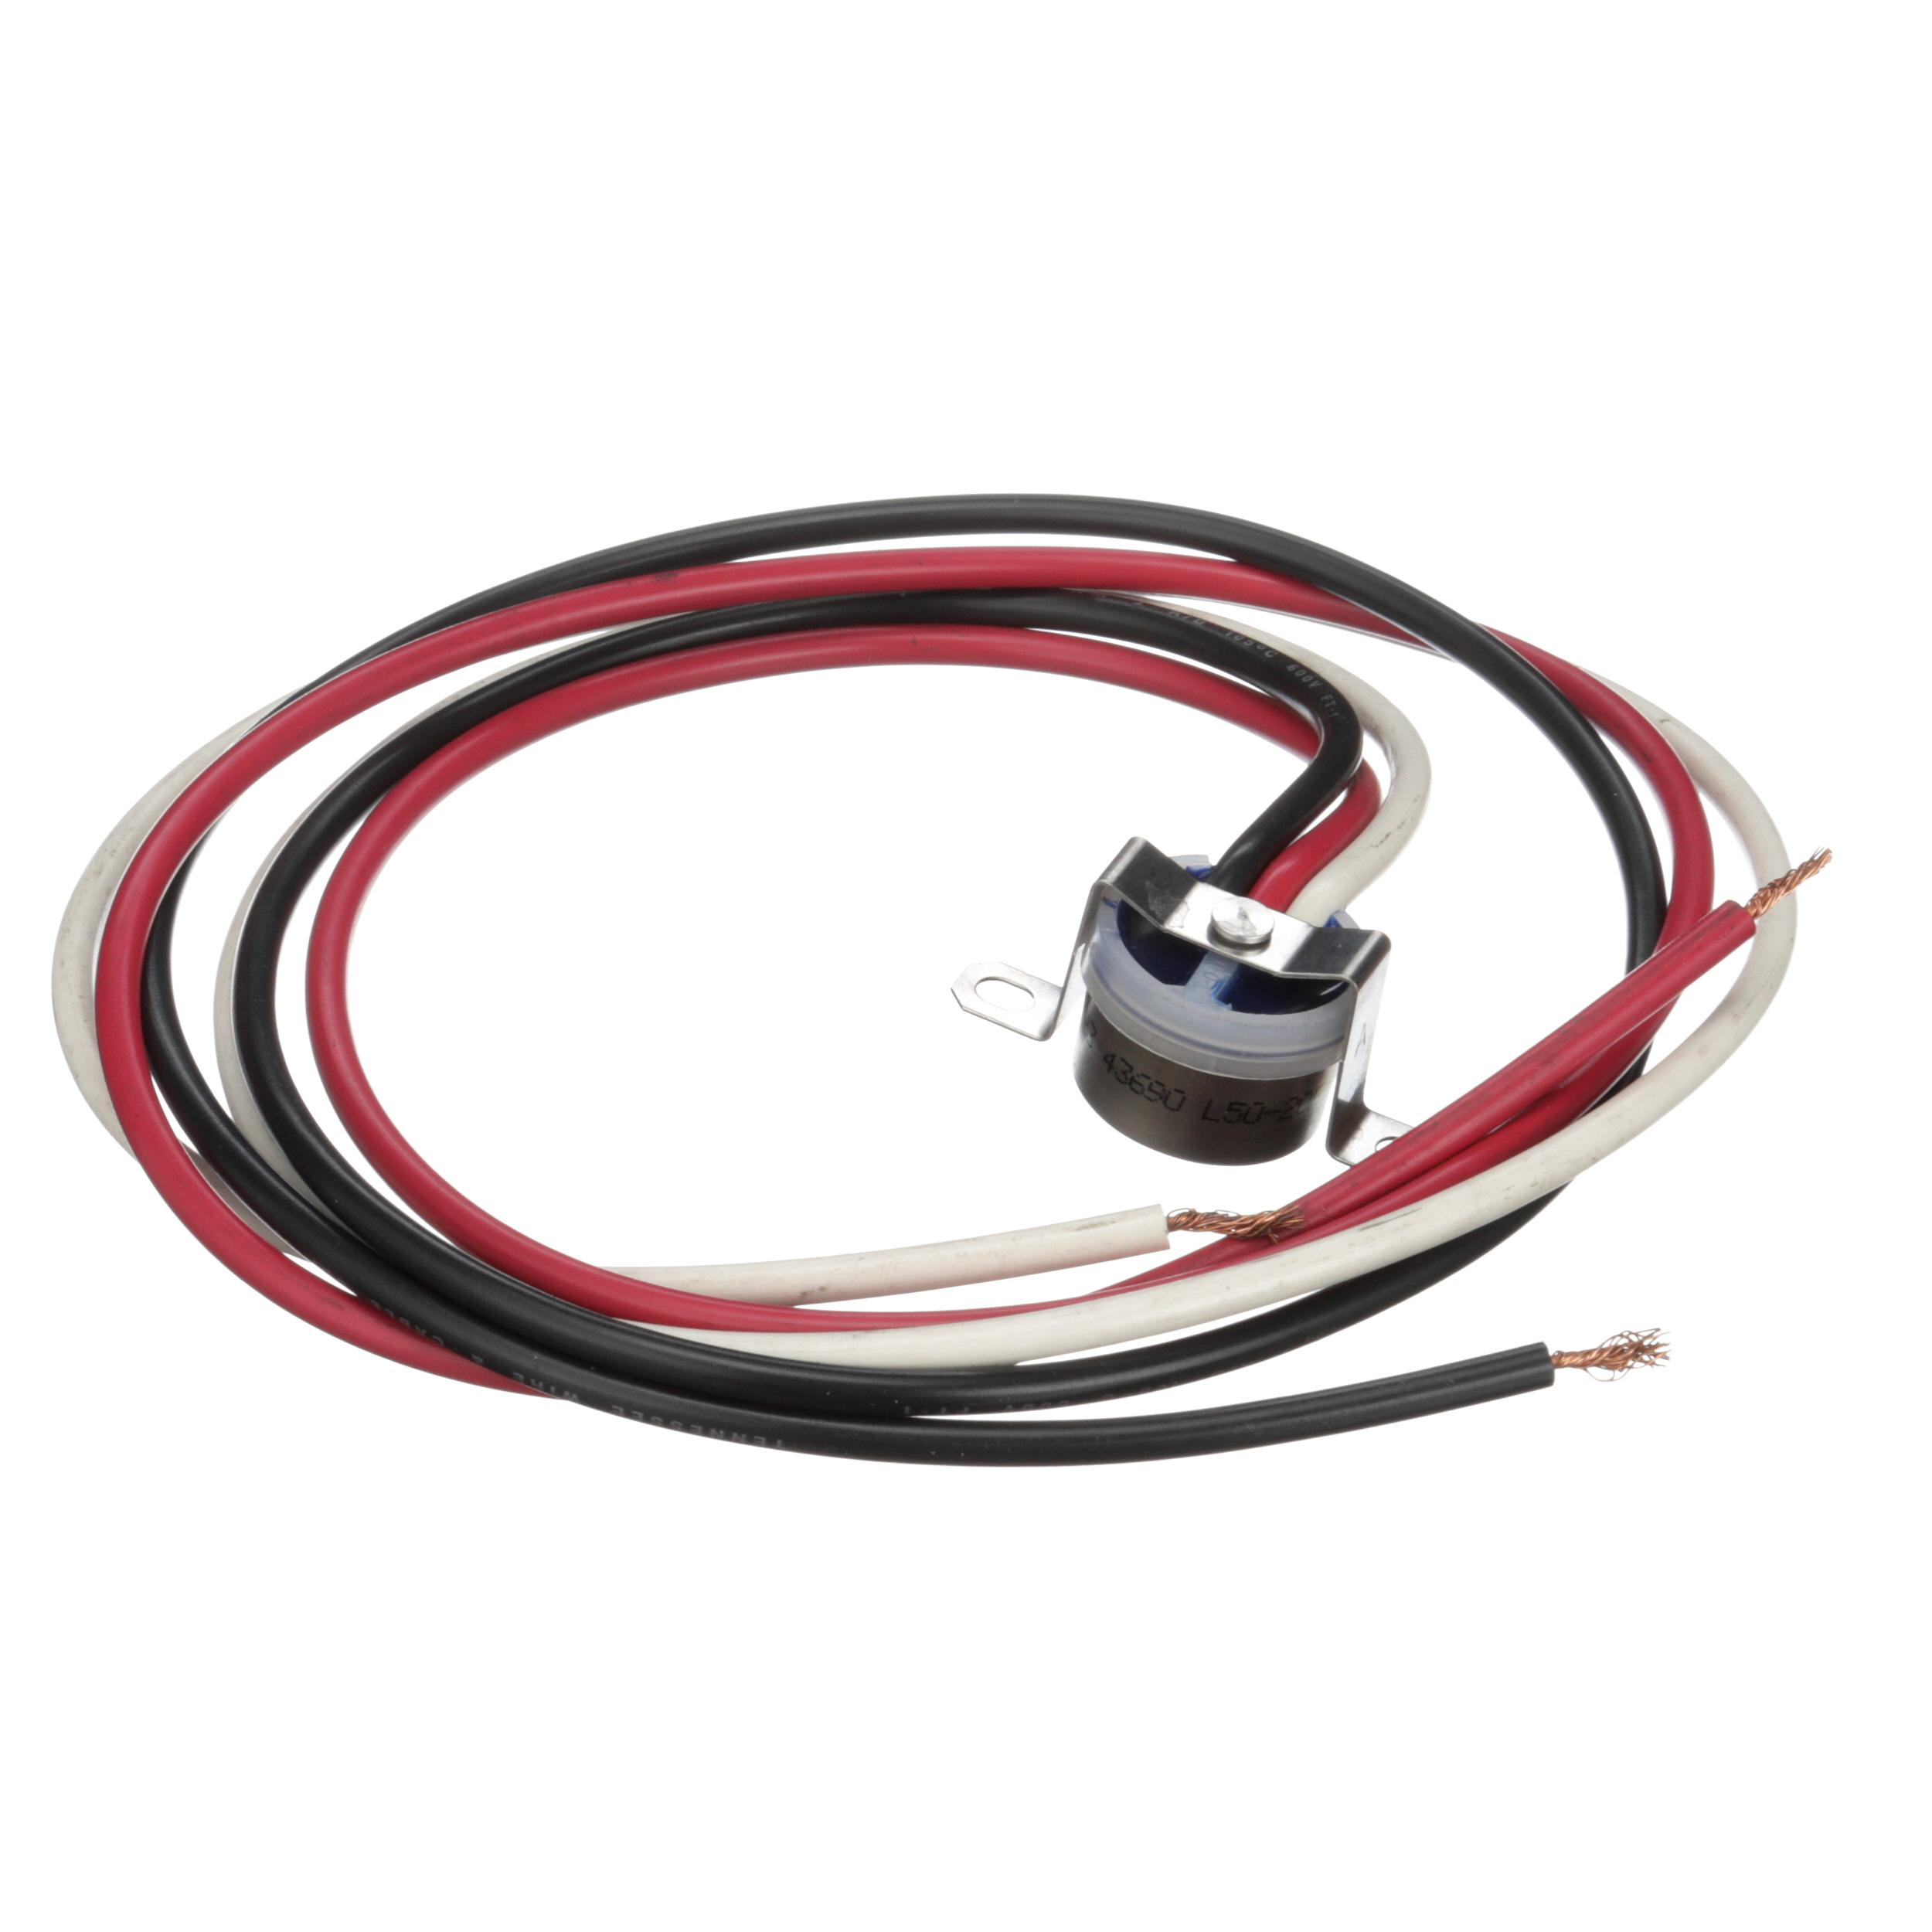 medium resolution of master bilt products fan delay term t stat nl 001781 3 wires red wiring black white n l